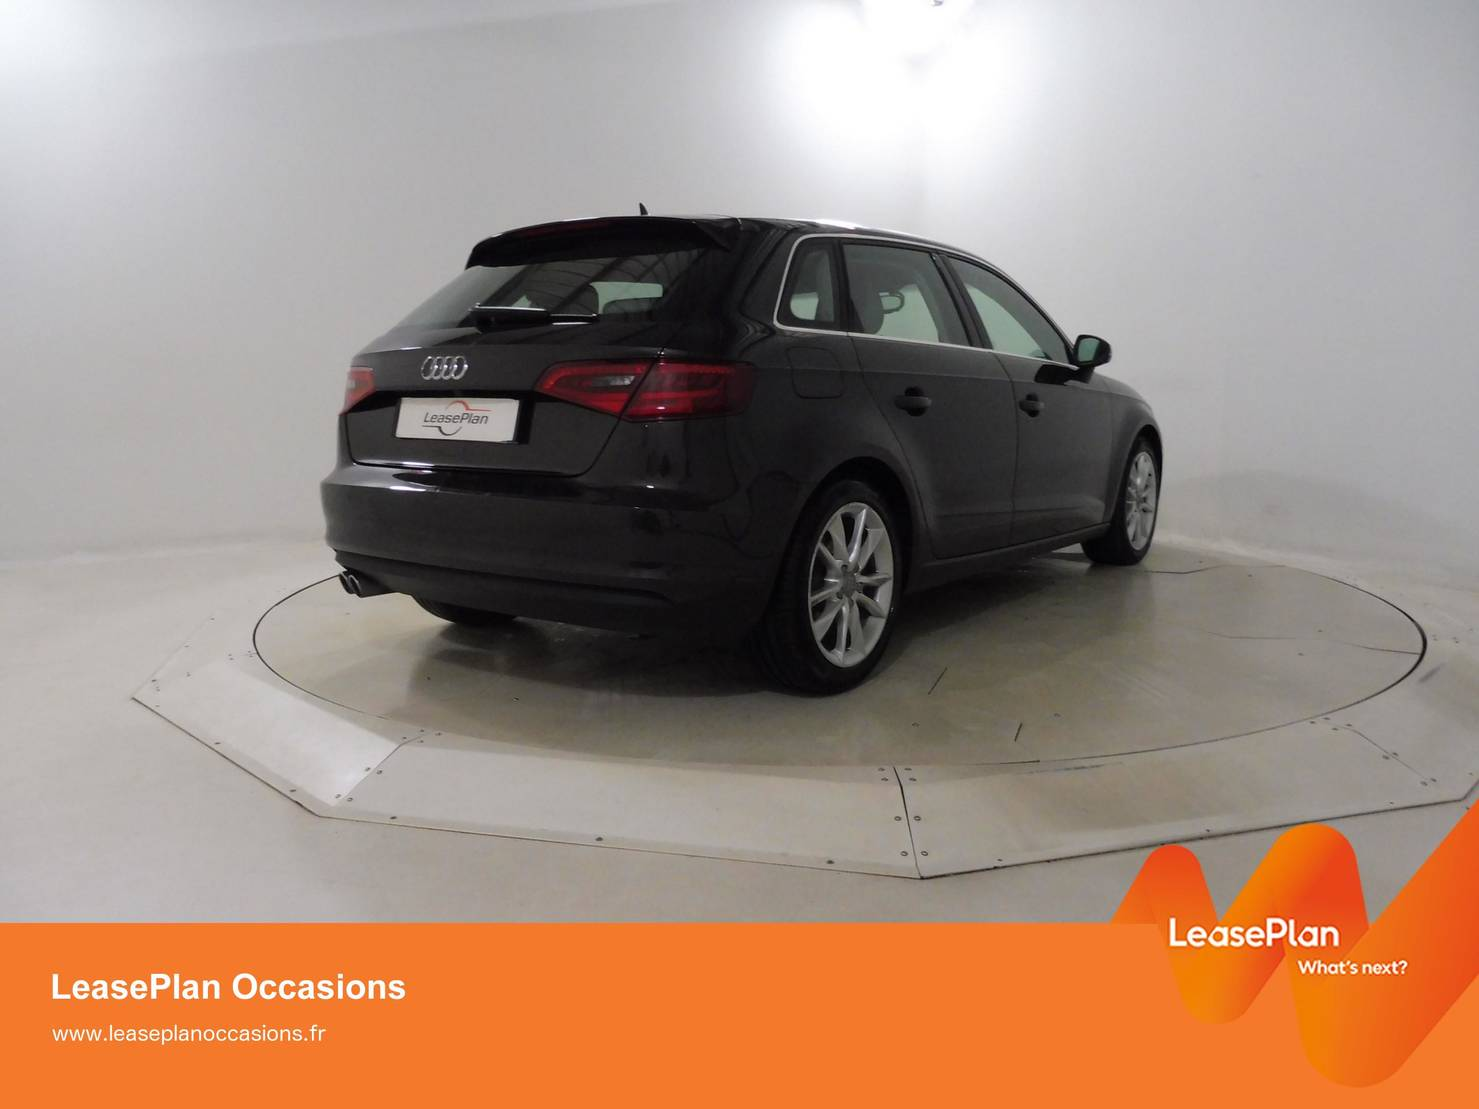 Audi A3 2.0 TDI 150, Ambition Luxe S tronic 6 detail2